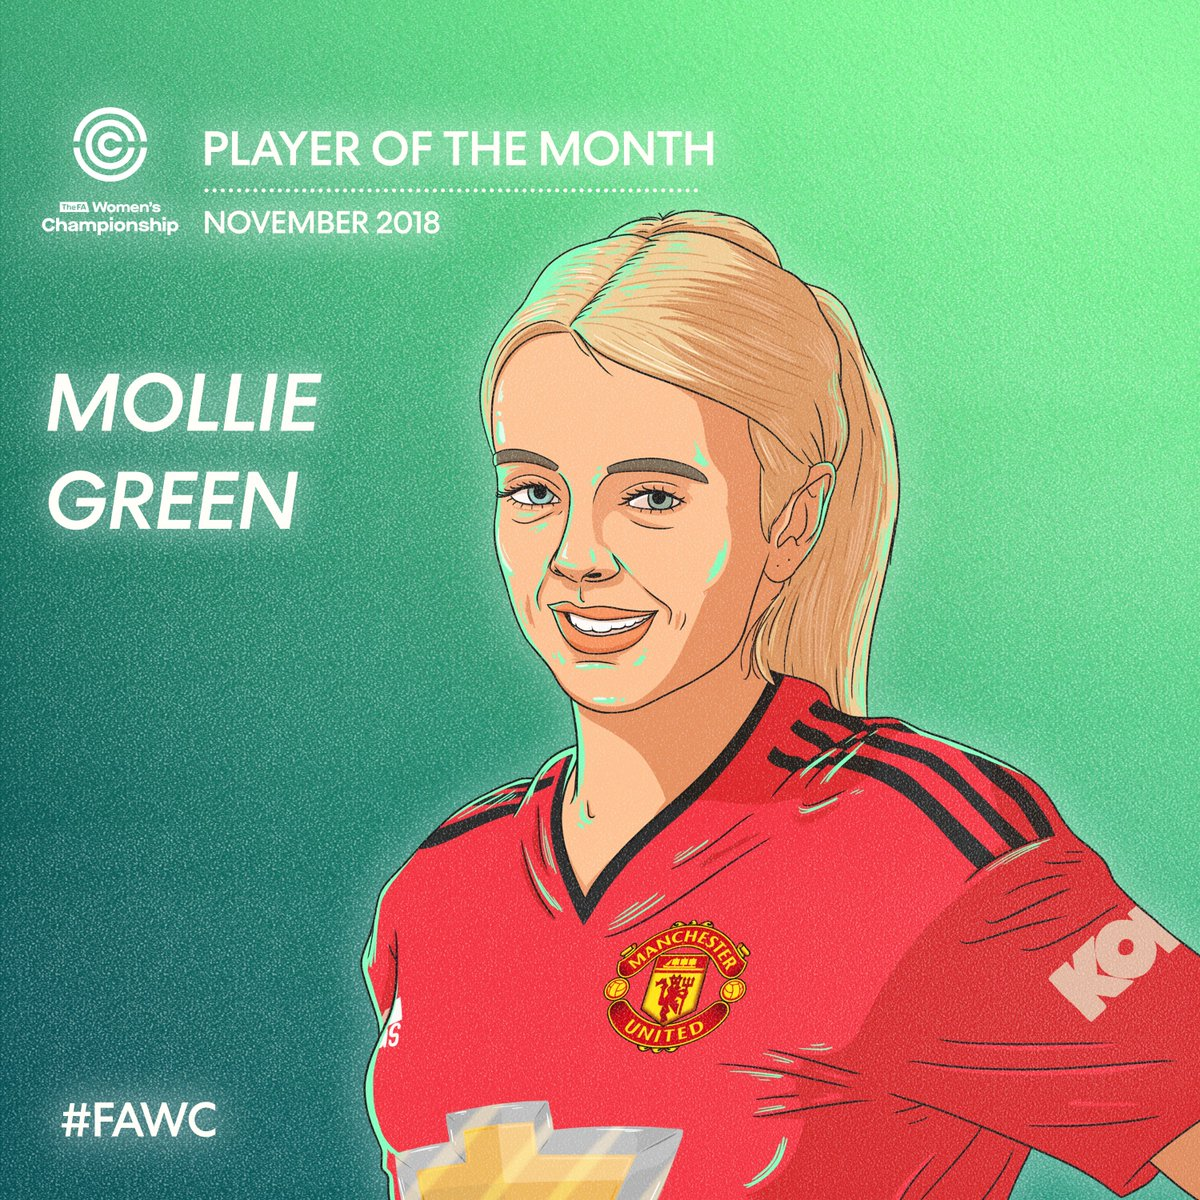 ✅ Three wins with @ManUtdWomen  ⚽️ Five goals in #FAWC  🔥 @mollie_green97's November > everyone else's